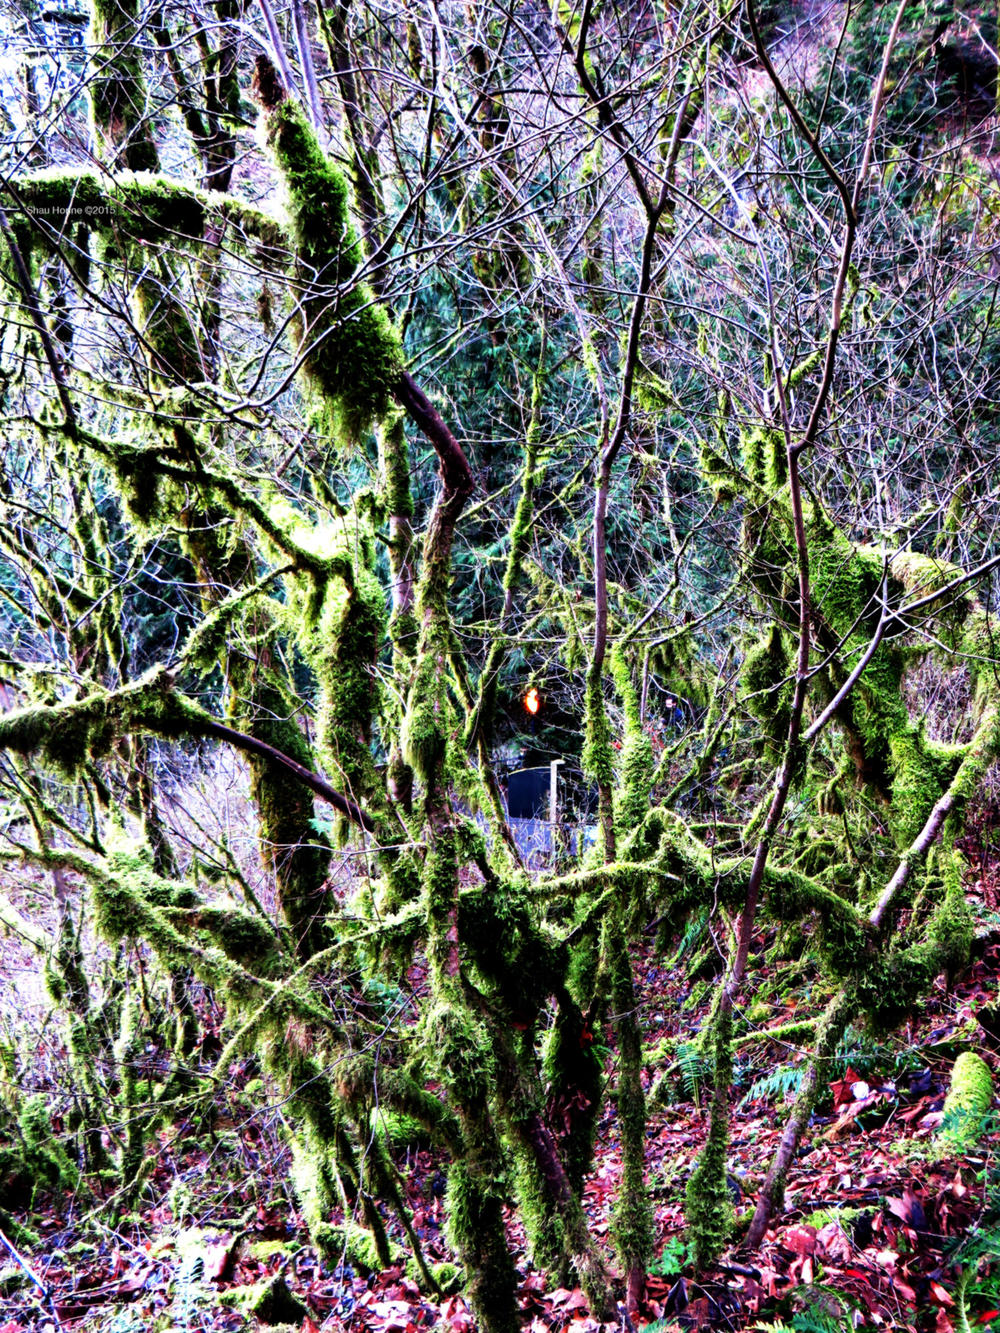 Some mossy branches on the trail up to Multnomah Falls. March 1st, 2015